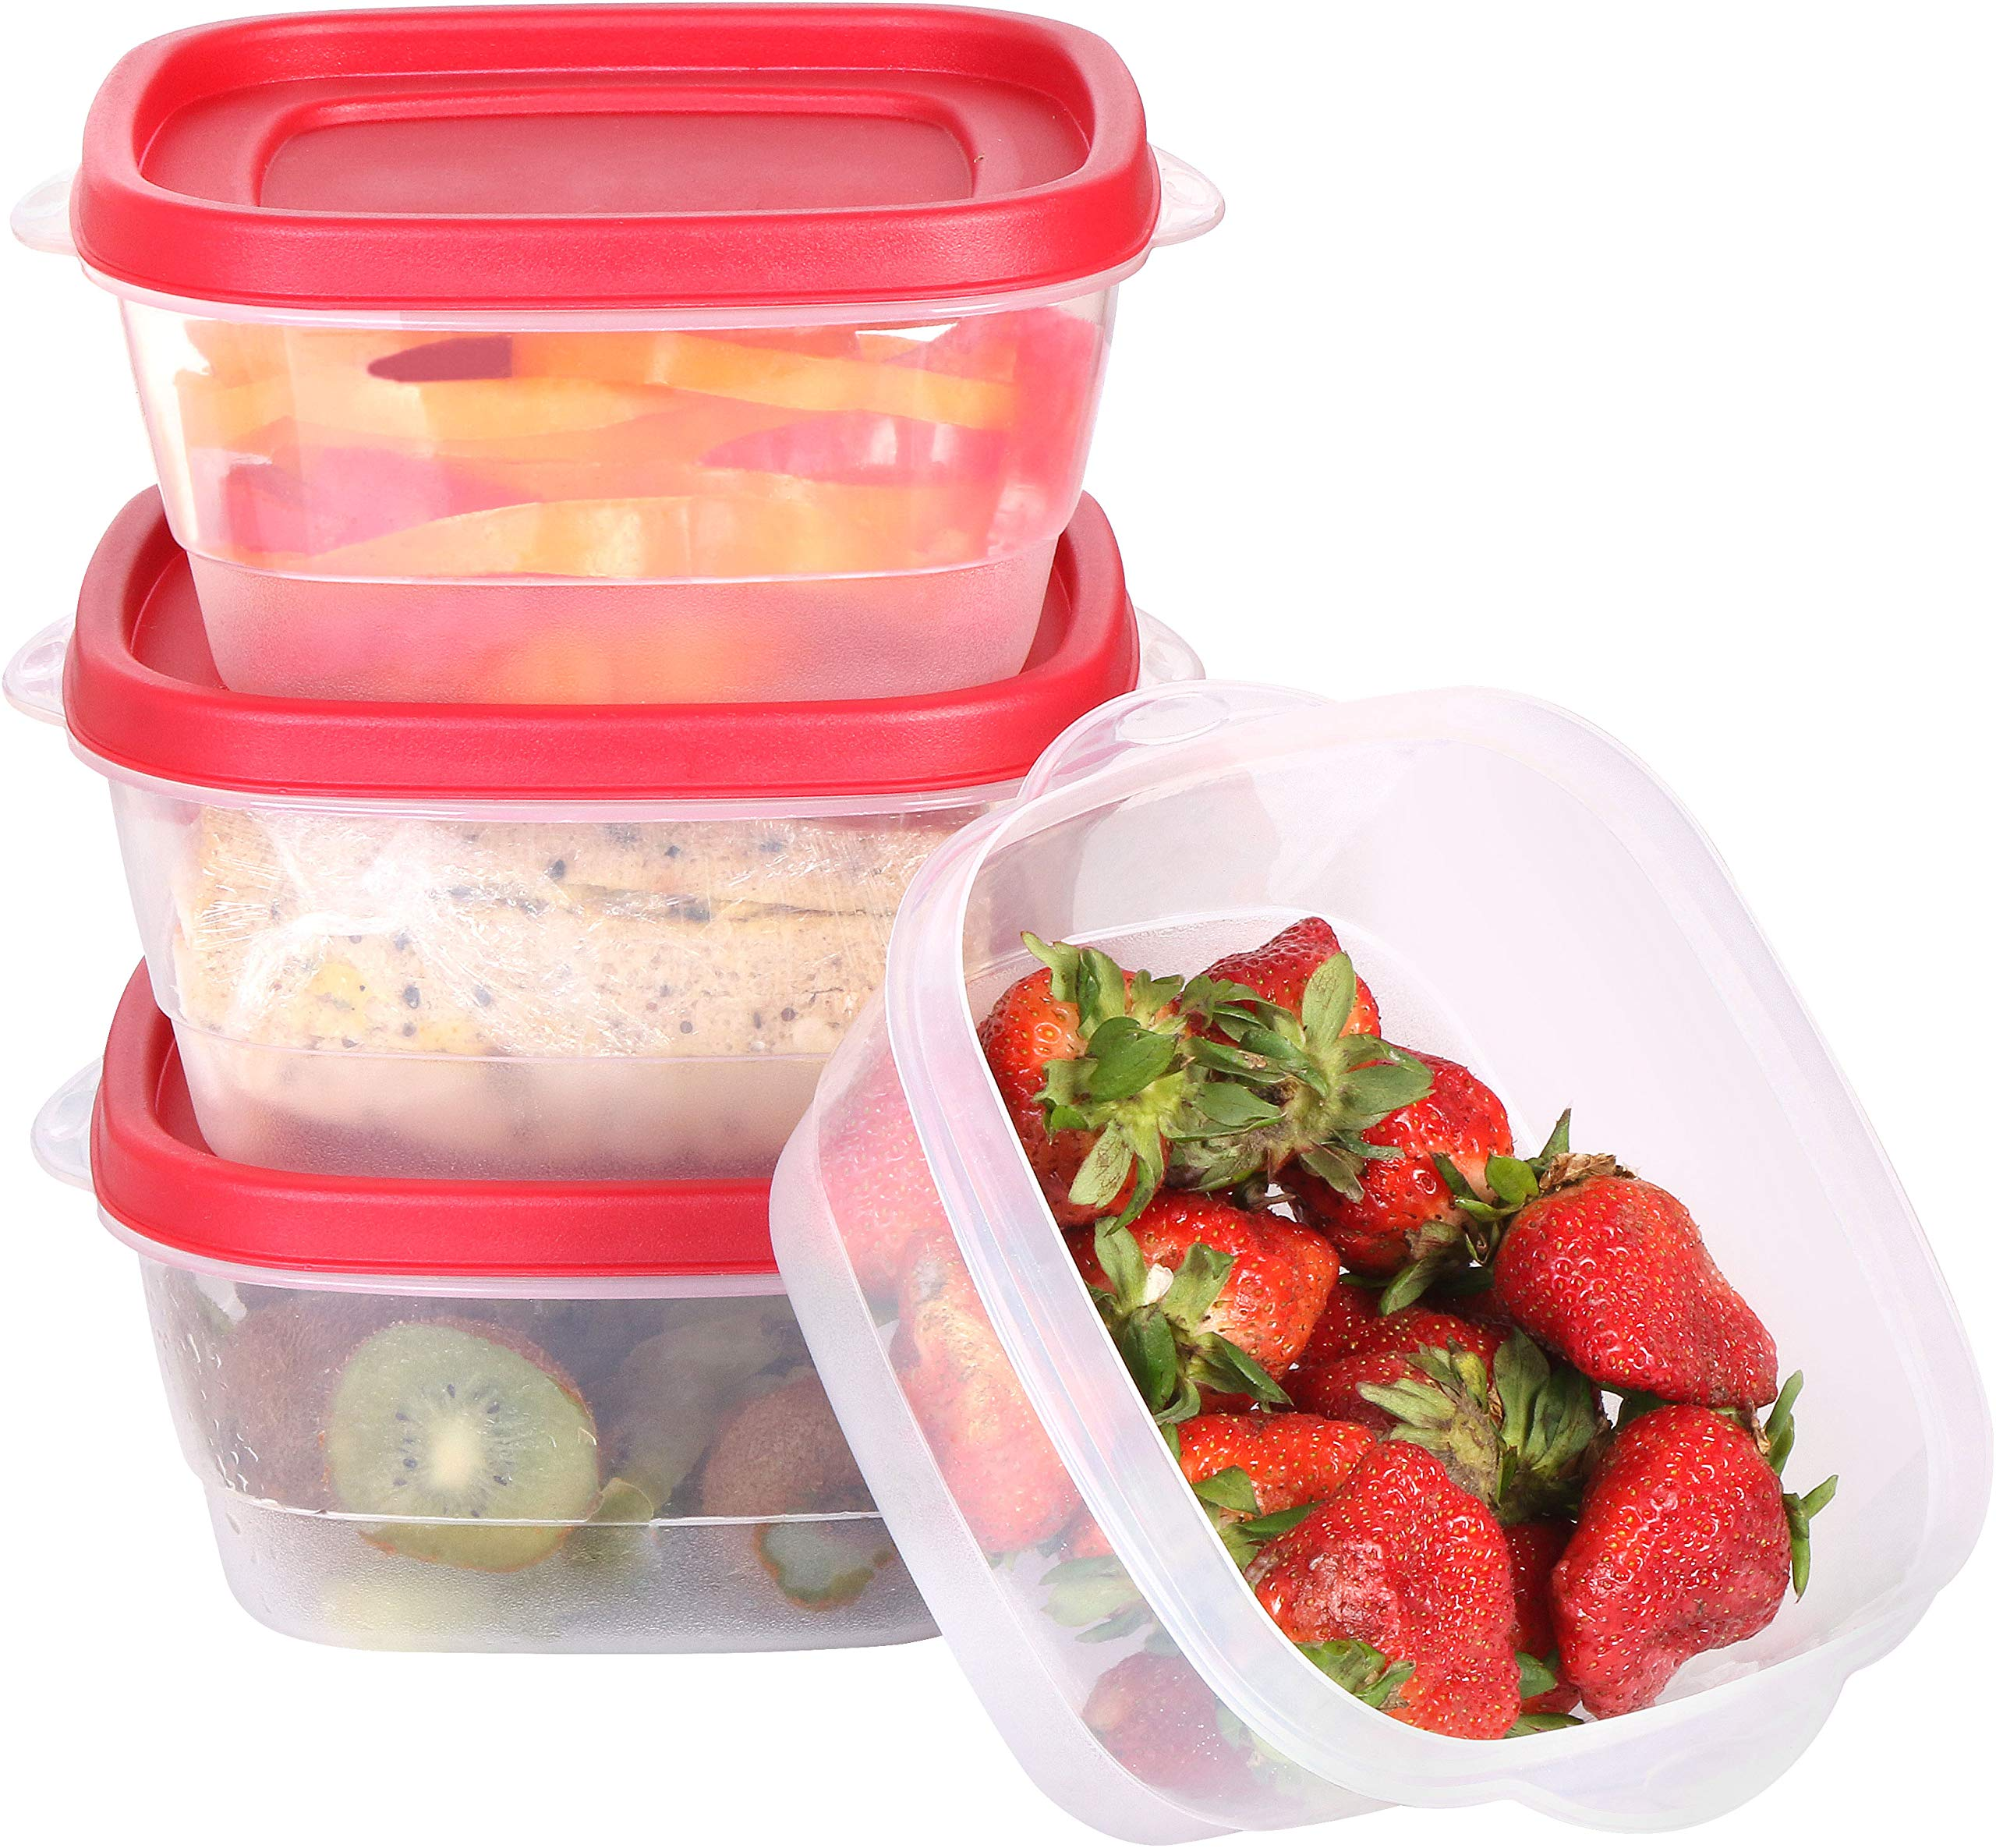 Utopia Kitchen Plastic Food Storage Containers with Lids [40 Pack] by Utopia Kitchen (Image #4)